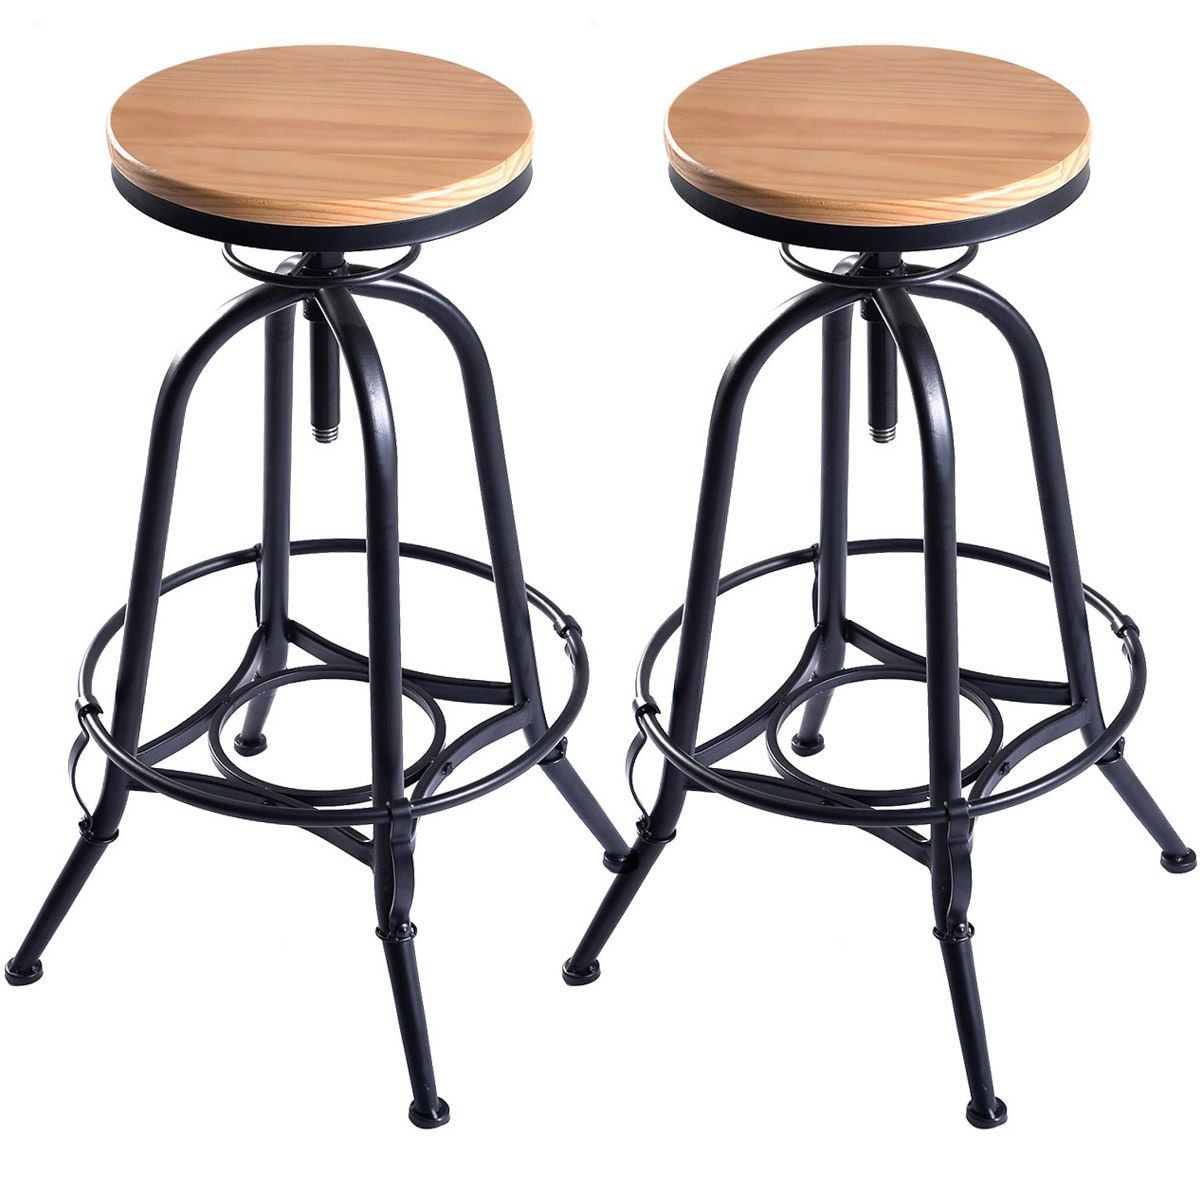 Costway Vintage Bar Stool Metal Frame Wood Top Adjustable Height Swivel Industrial 2bar Stools Vintage Bar Stools Wood Bar Stools Bar Stools